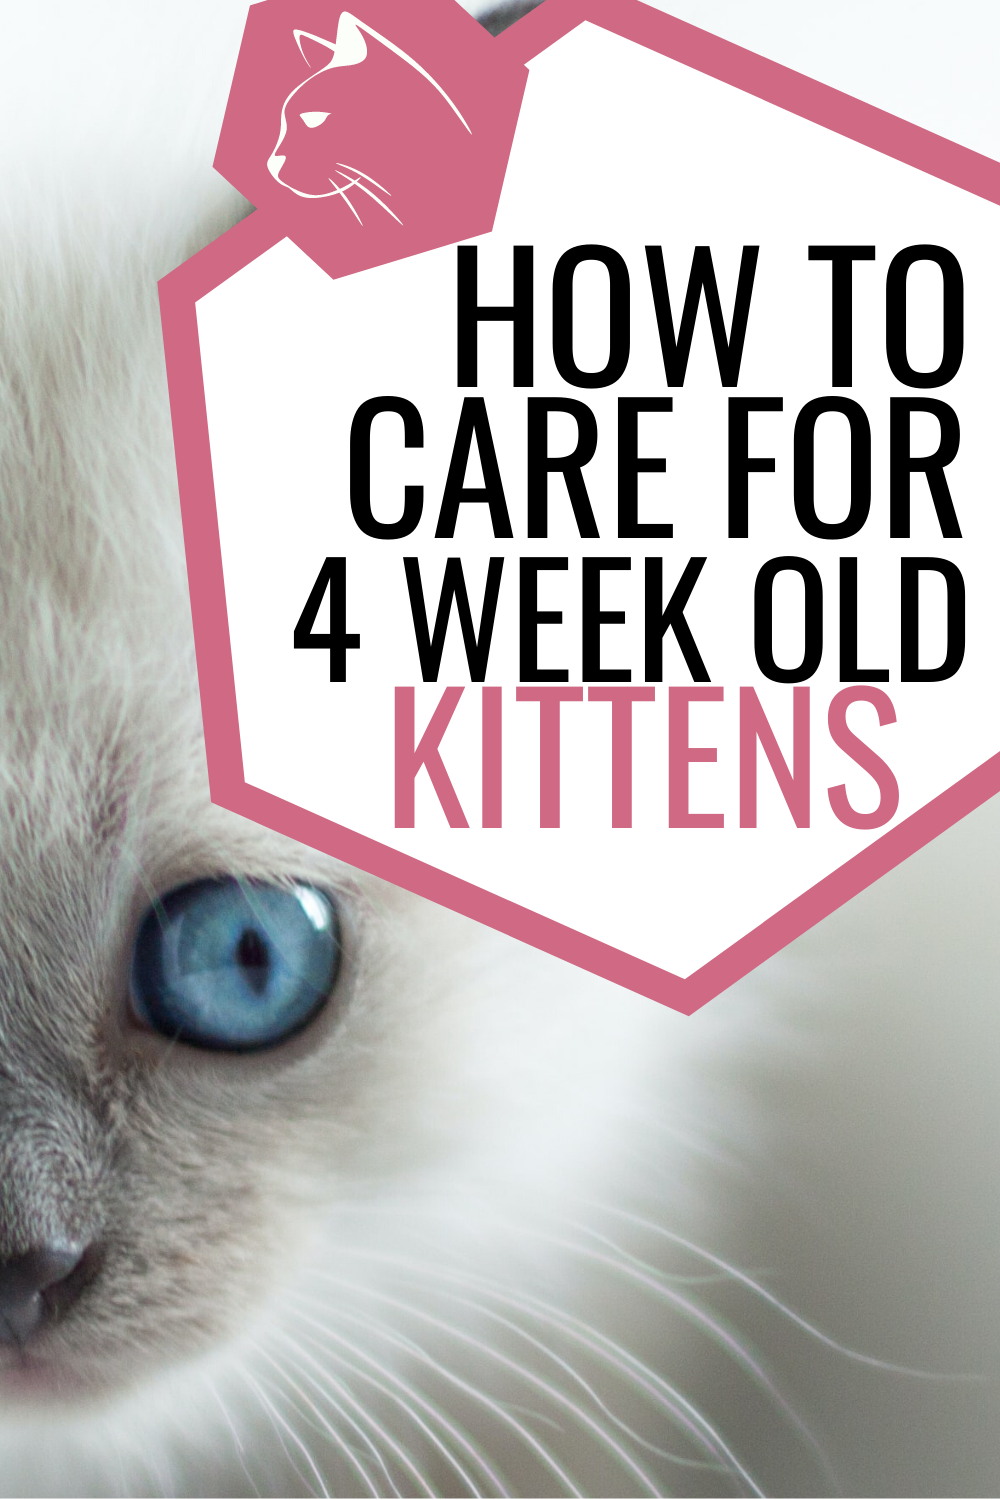 The Simple Guide To Caring For Four Week Old Kittens Live Long And Pawspurr In 2020 6 Week Old Kitten Newborn Kittens Kitten Care